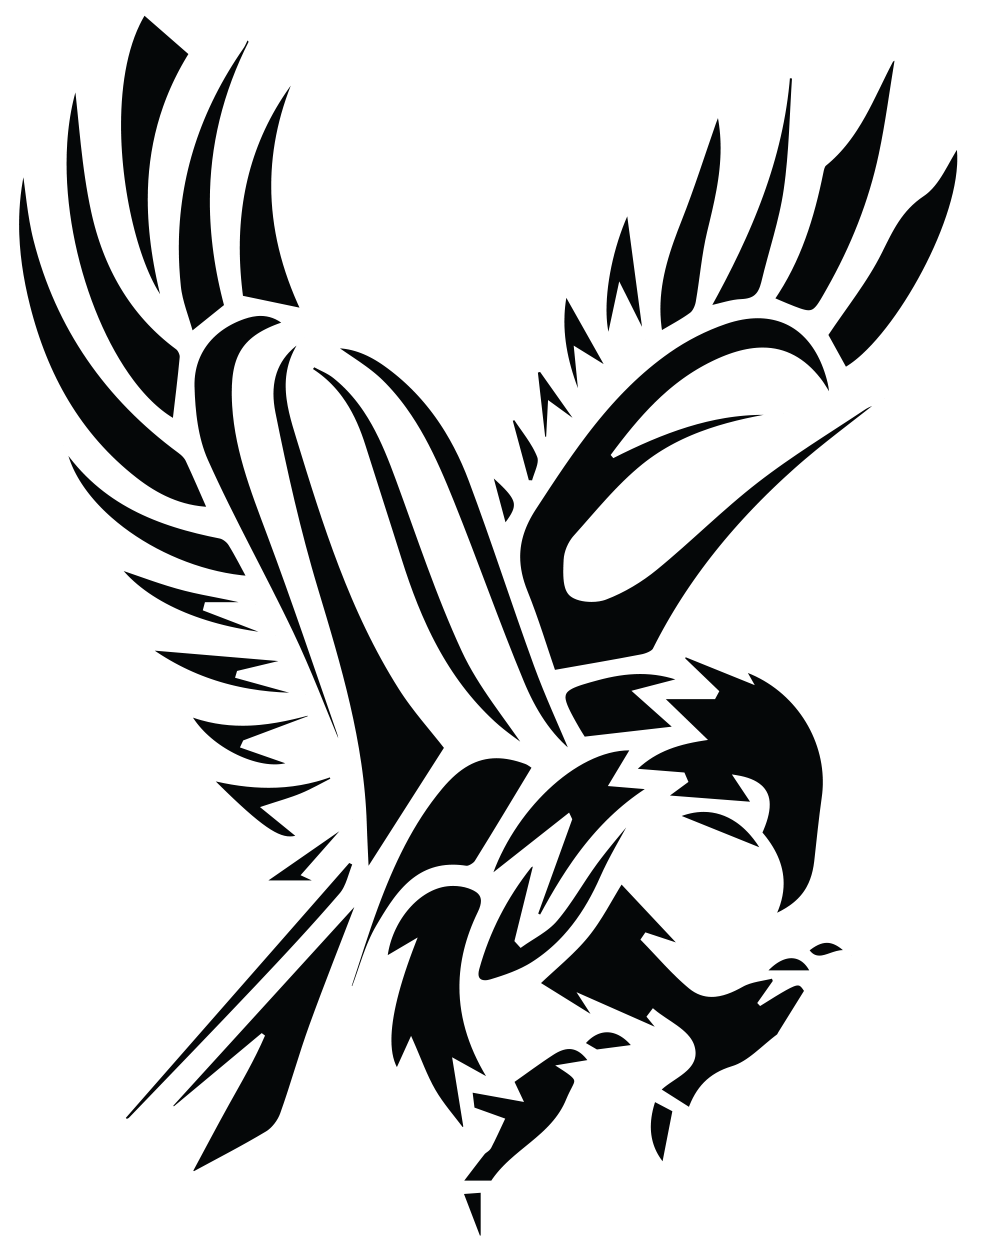 Claws vector falcon. Image black tribal flying